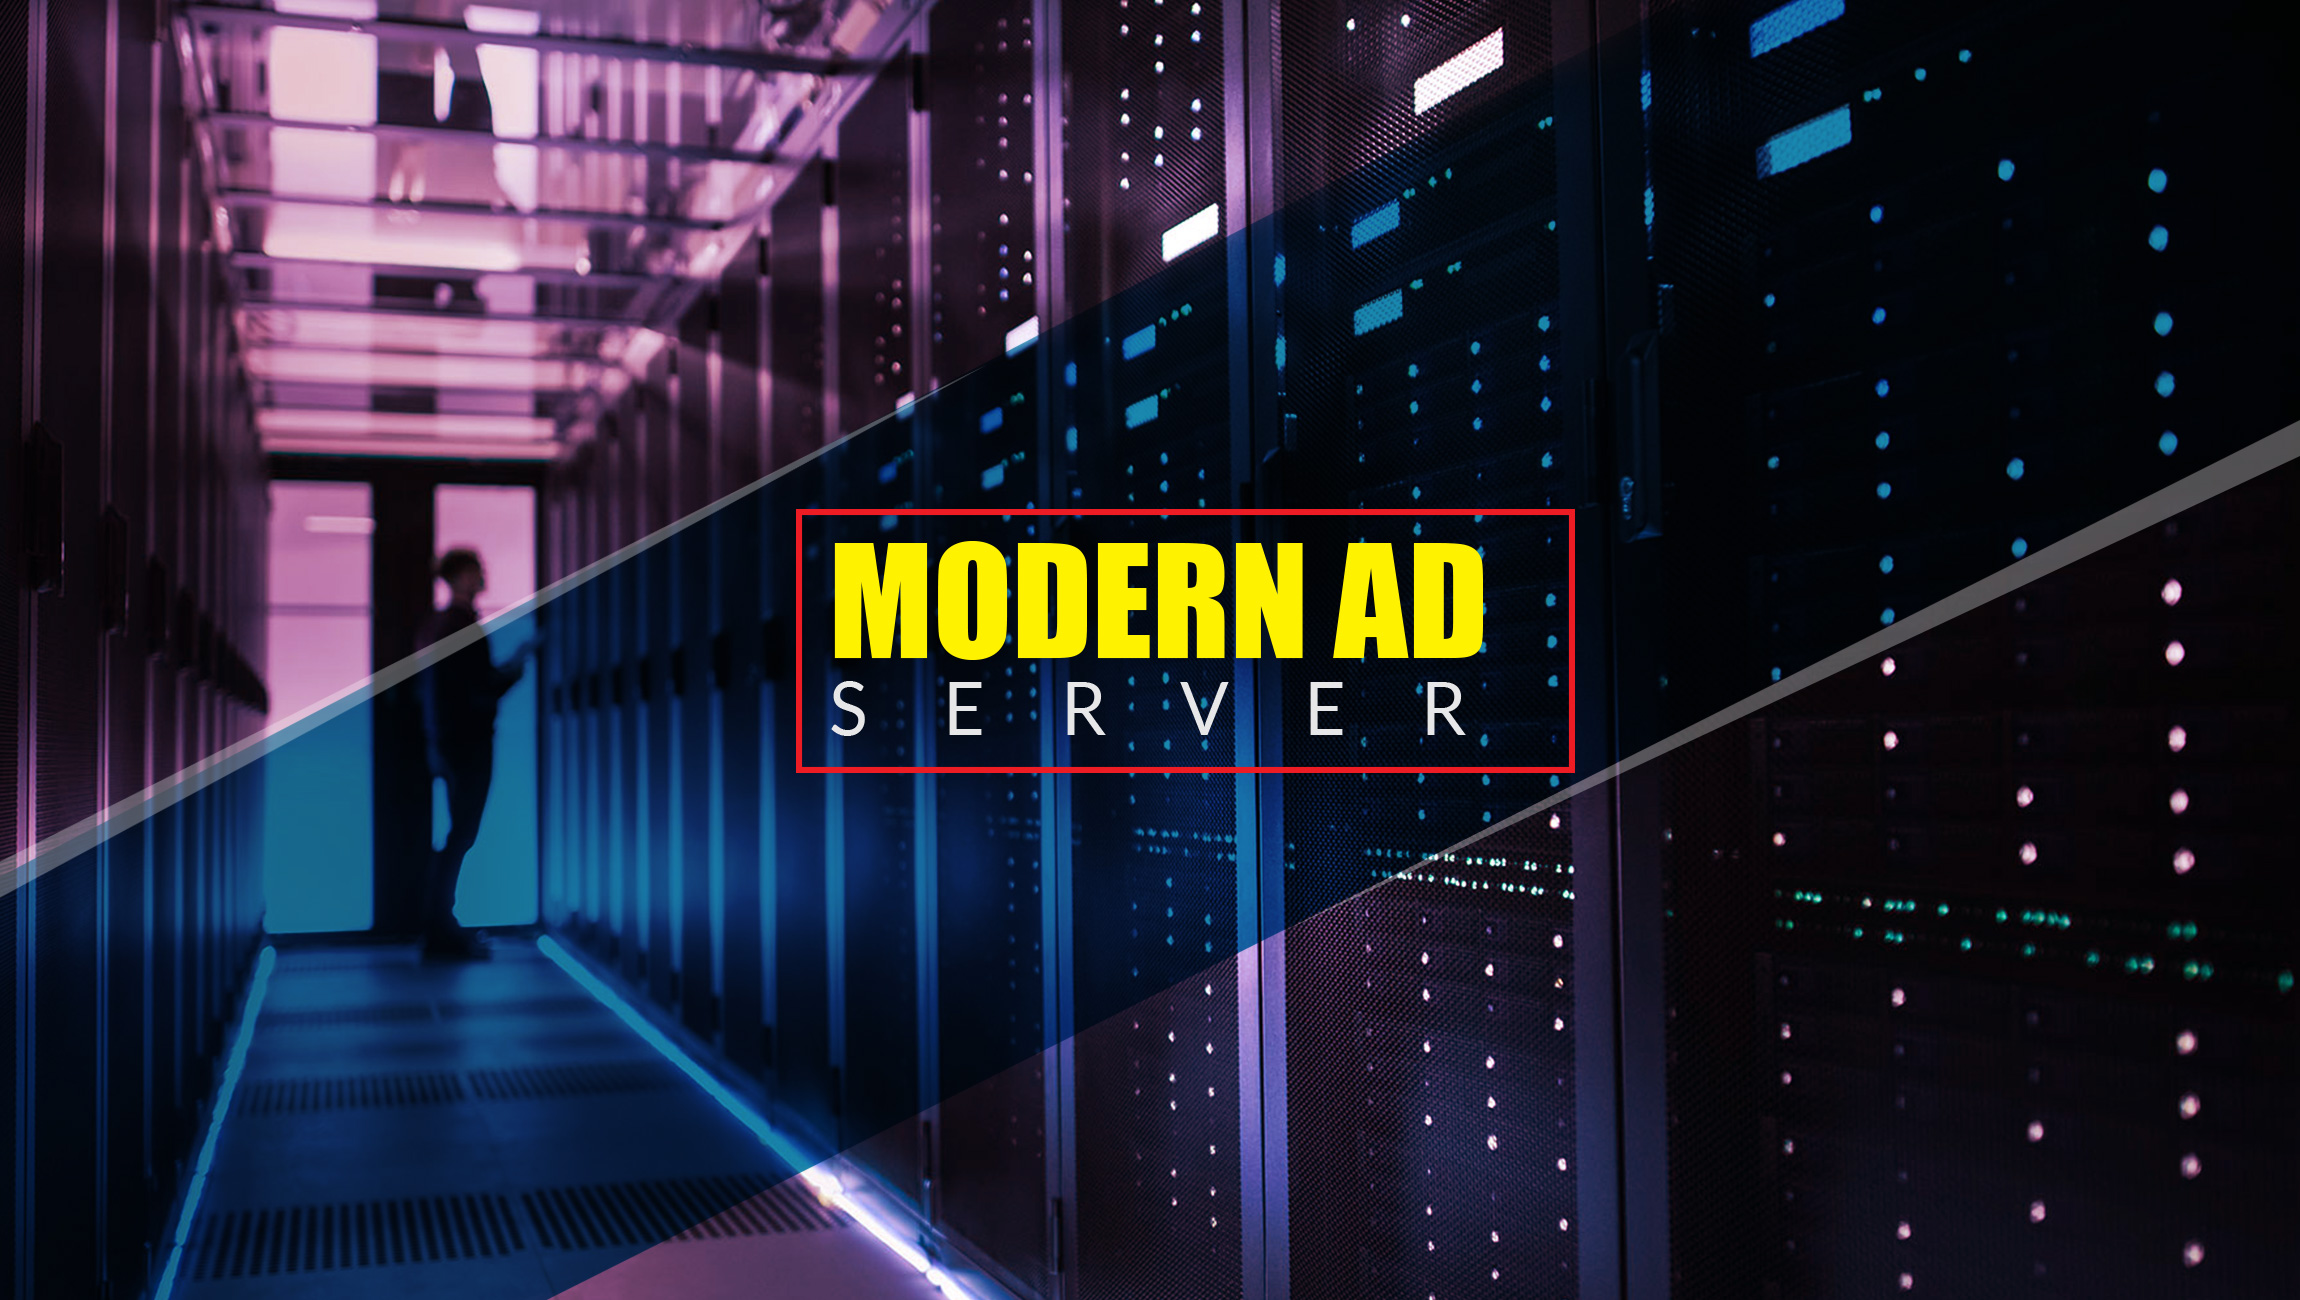 Taken for Granted: The Many Problems Solved by the Modern Ad Server